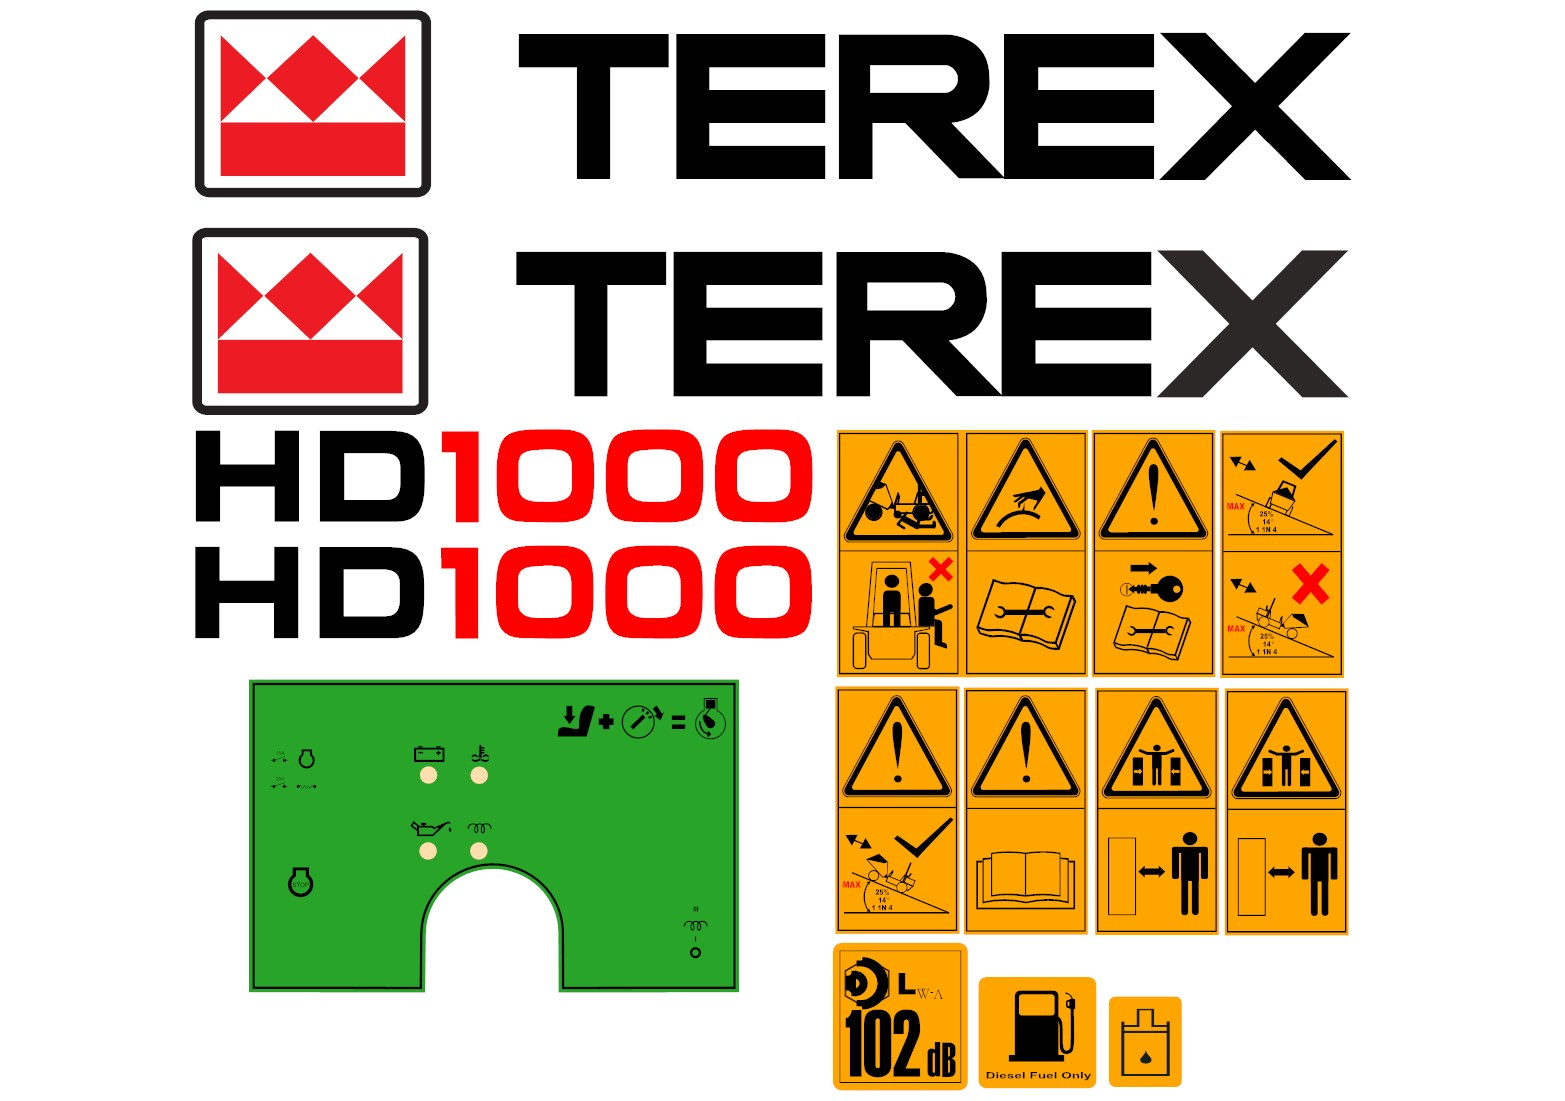 TEREX HD1000 terex hd1000 dumper decal set amc machinery decals terex hd1000 wiring diagram at gsmx.co